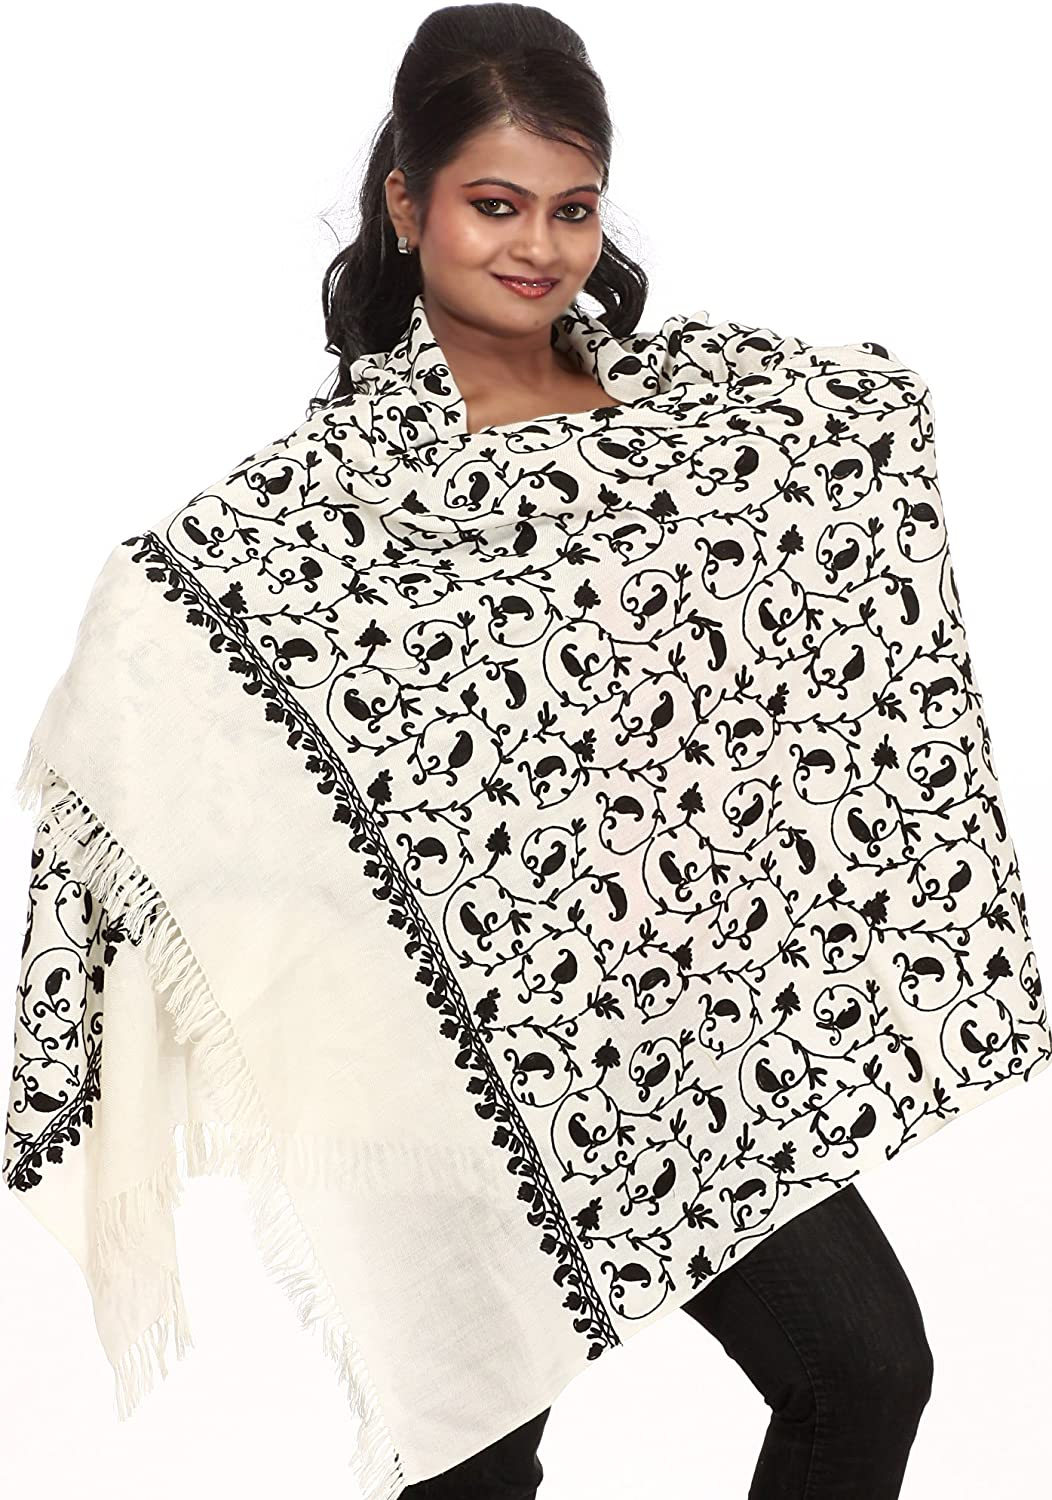 Exotic Under blast sales India Stole from Kashmir Ari Pa Embroidered Ranking integrated 1st place with